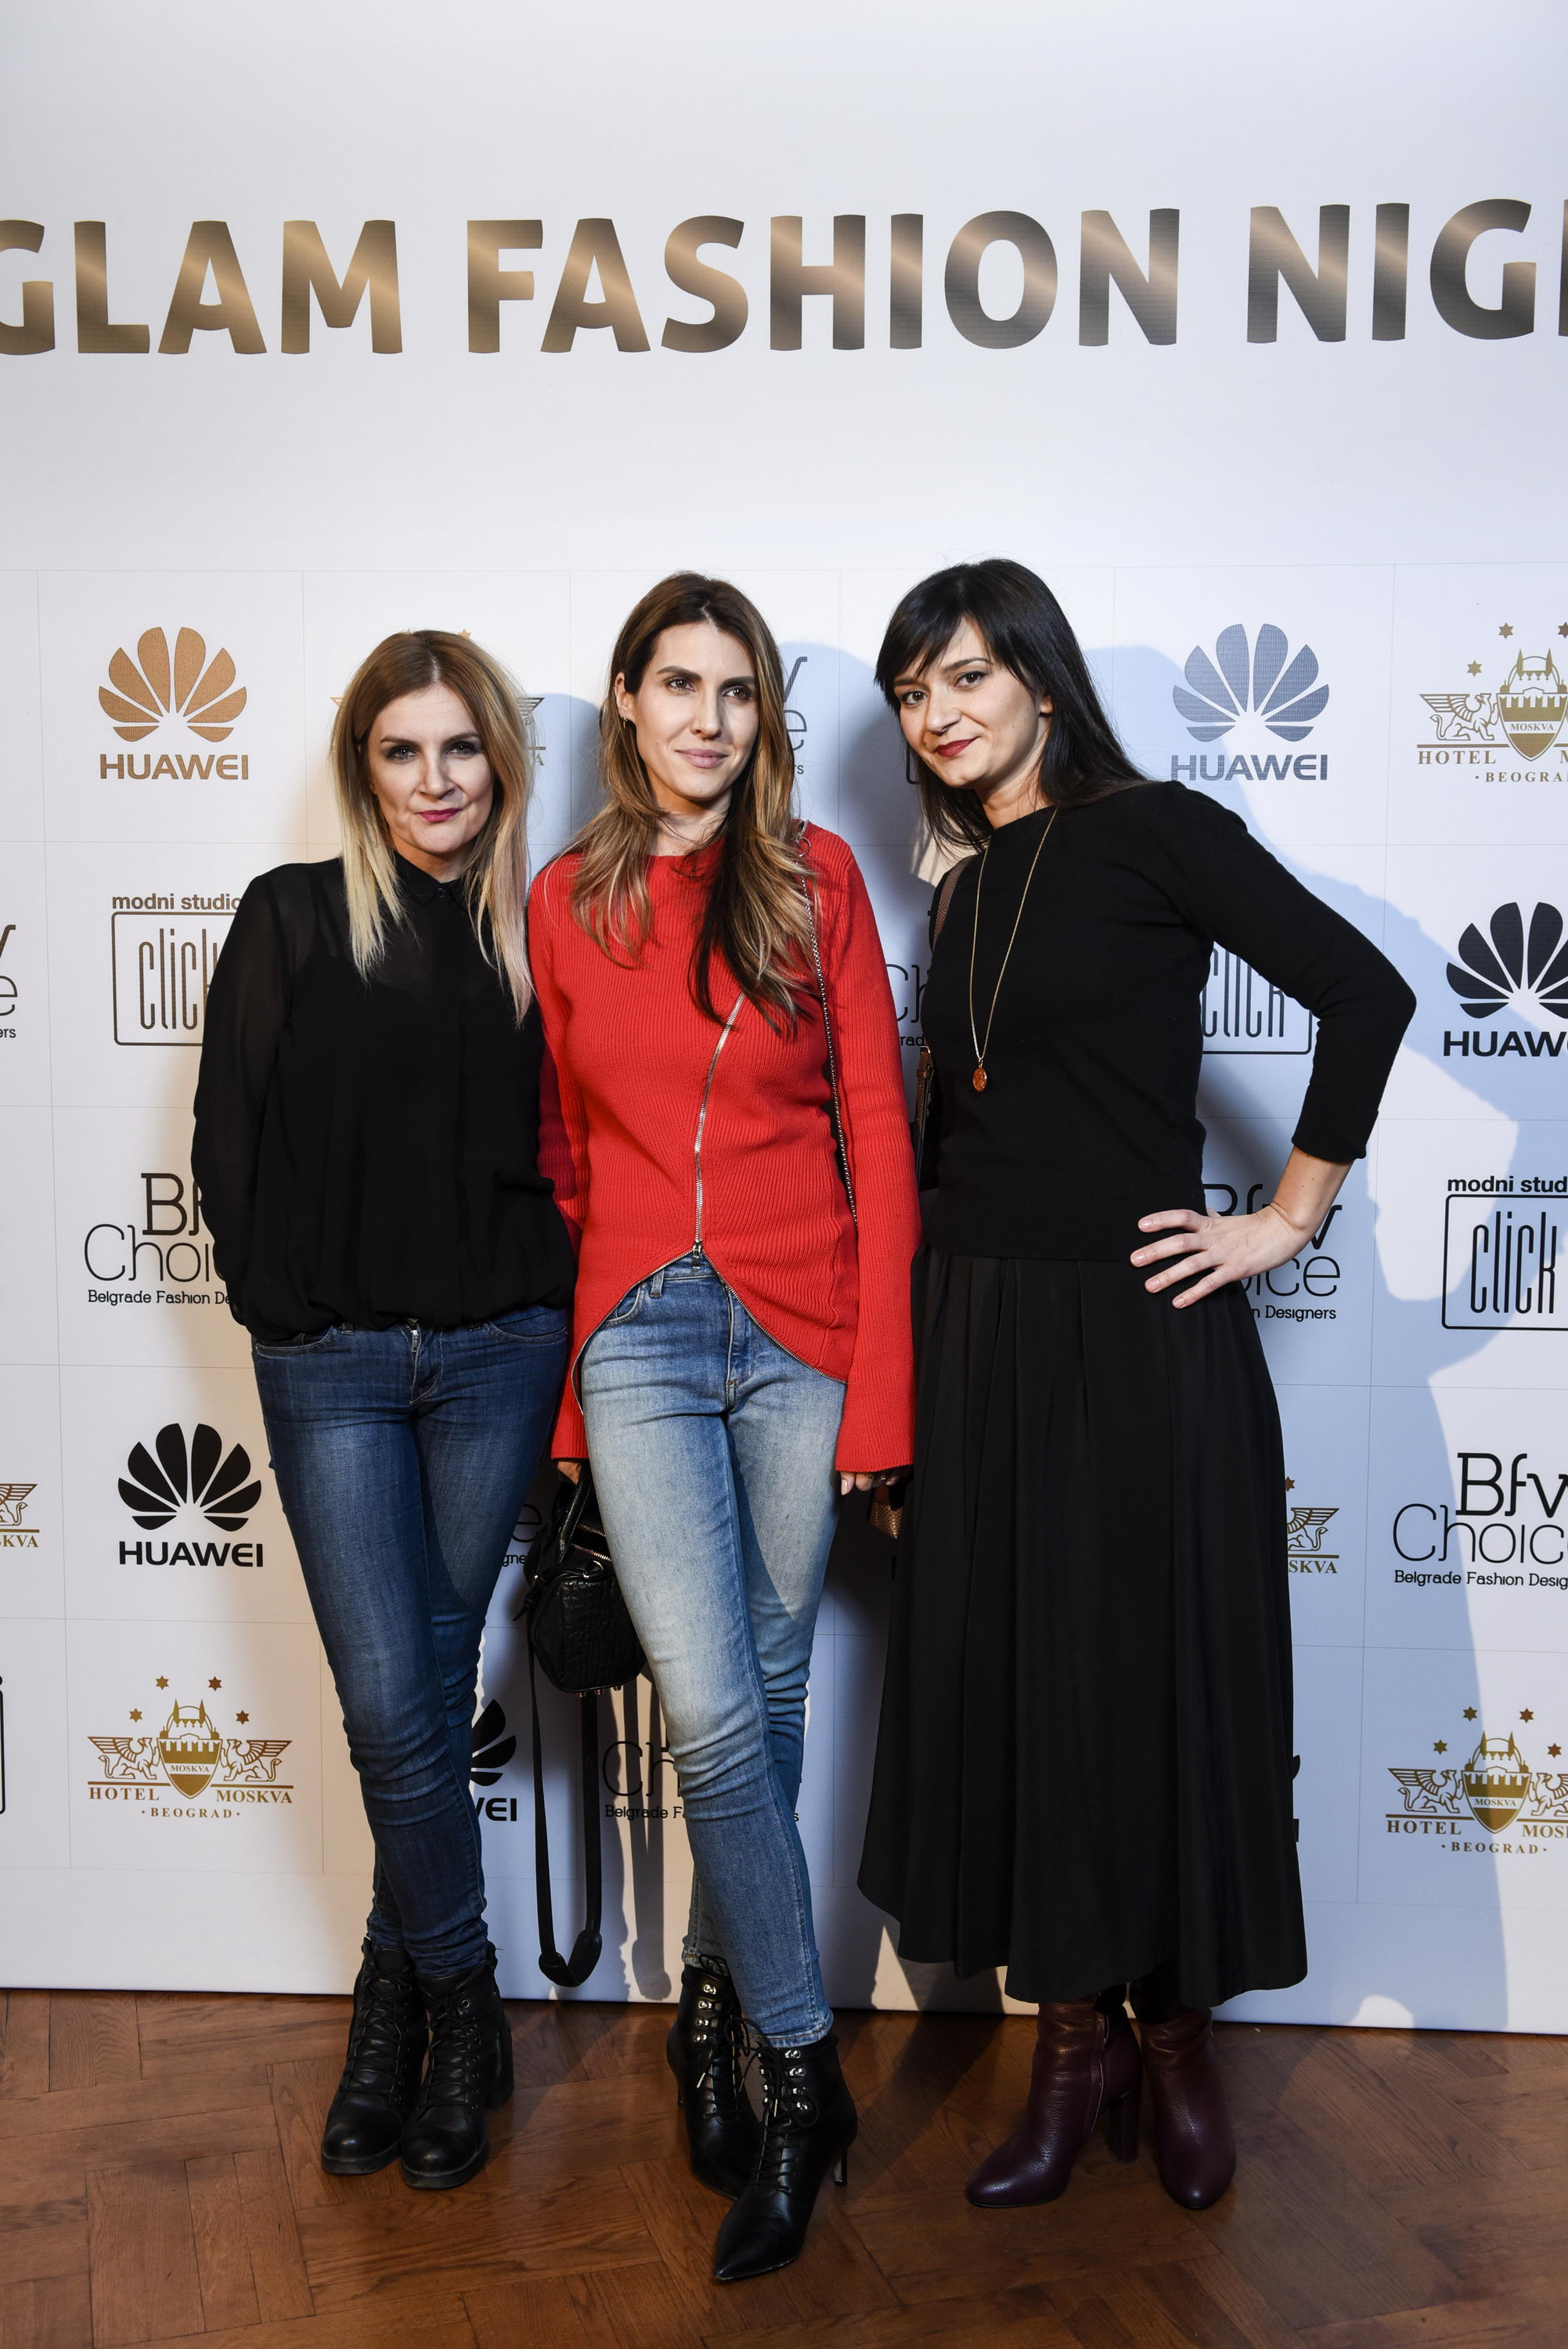 Barbara garčević, IRENA JOVANOVIC I MARINA LUKIĆ Glam Fashion Night